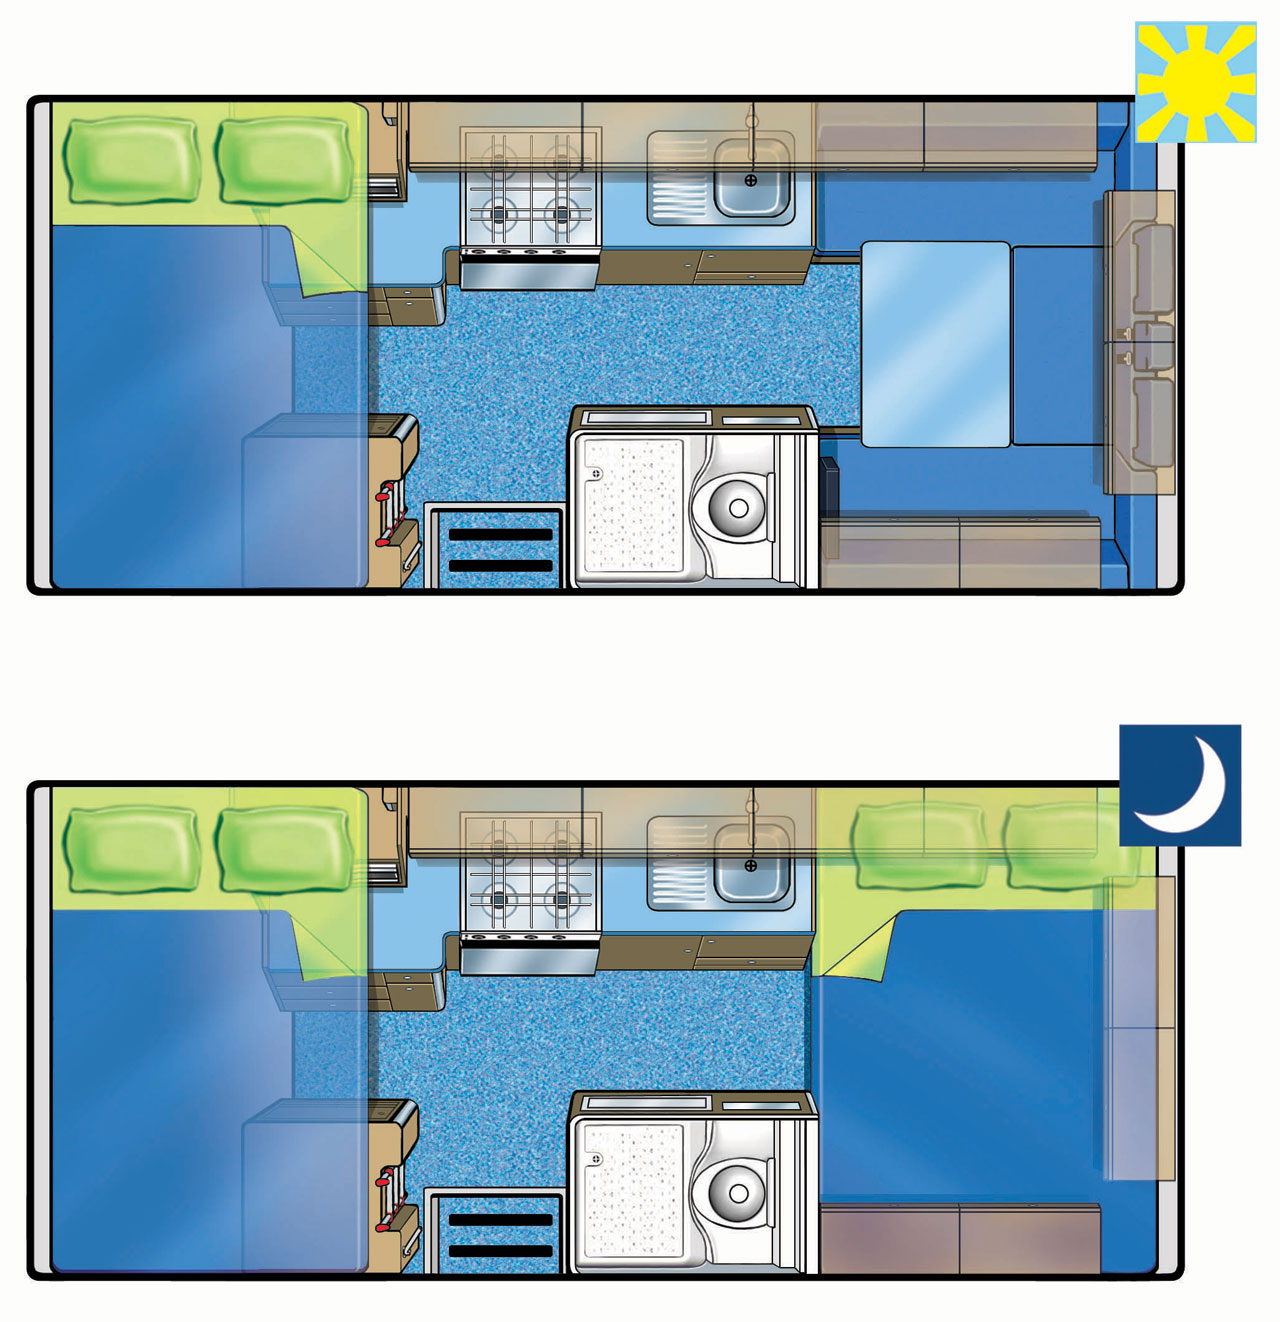 mighty-doubleup-layout.jpg